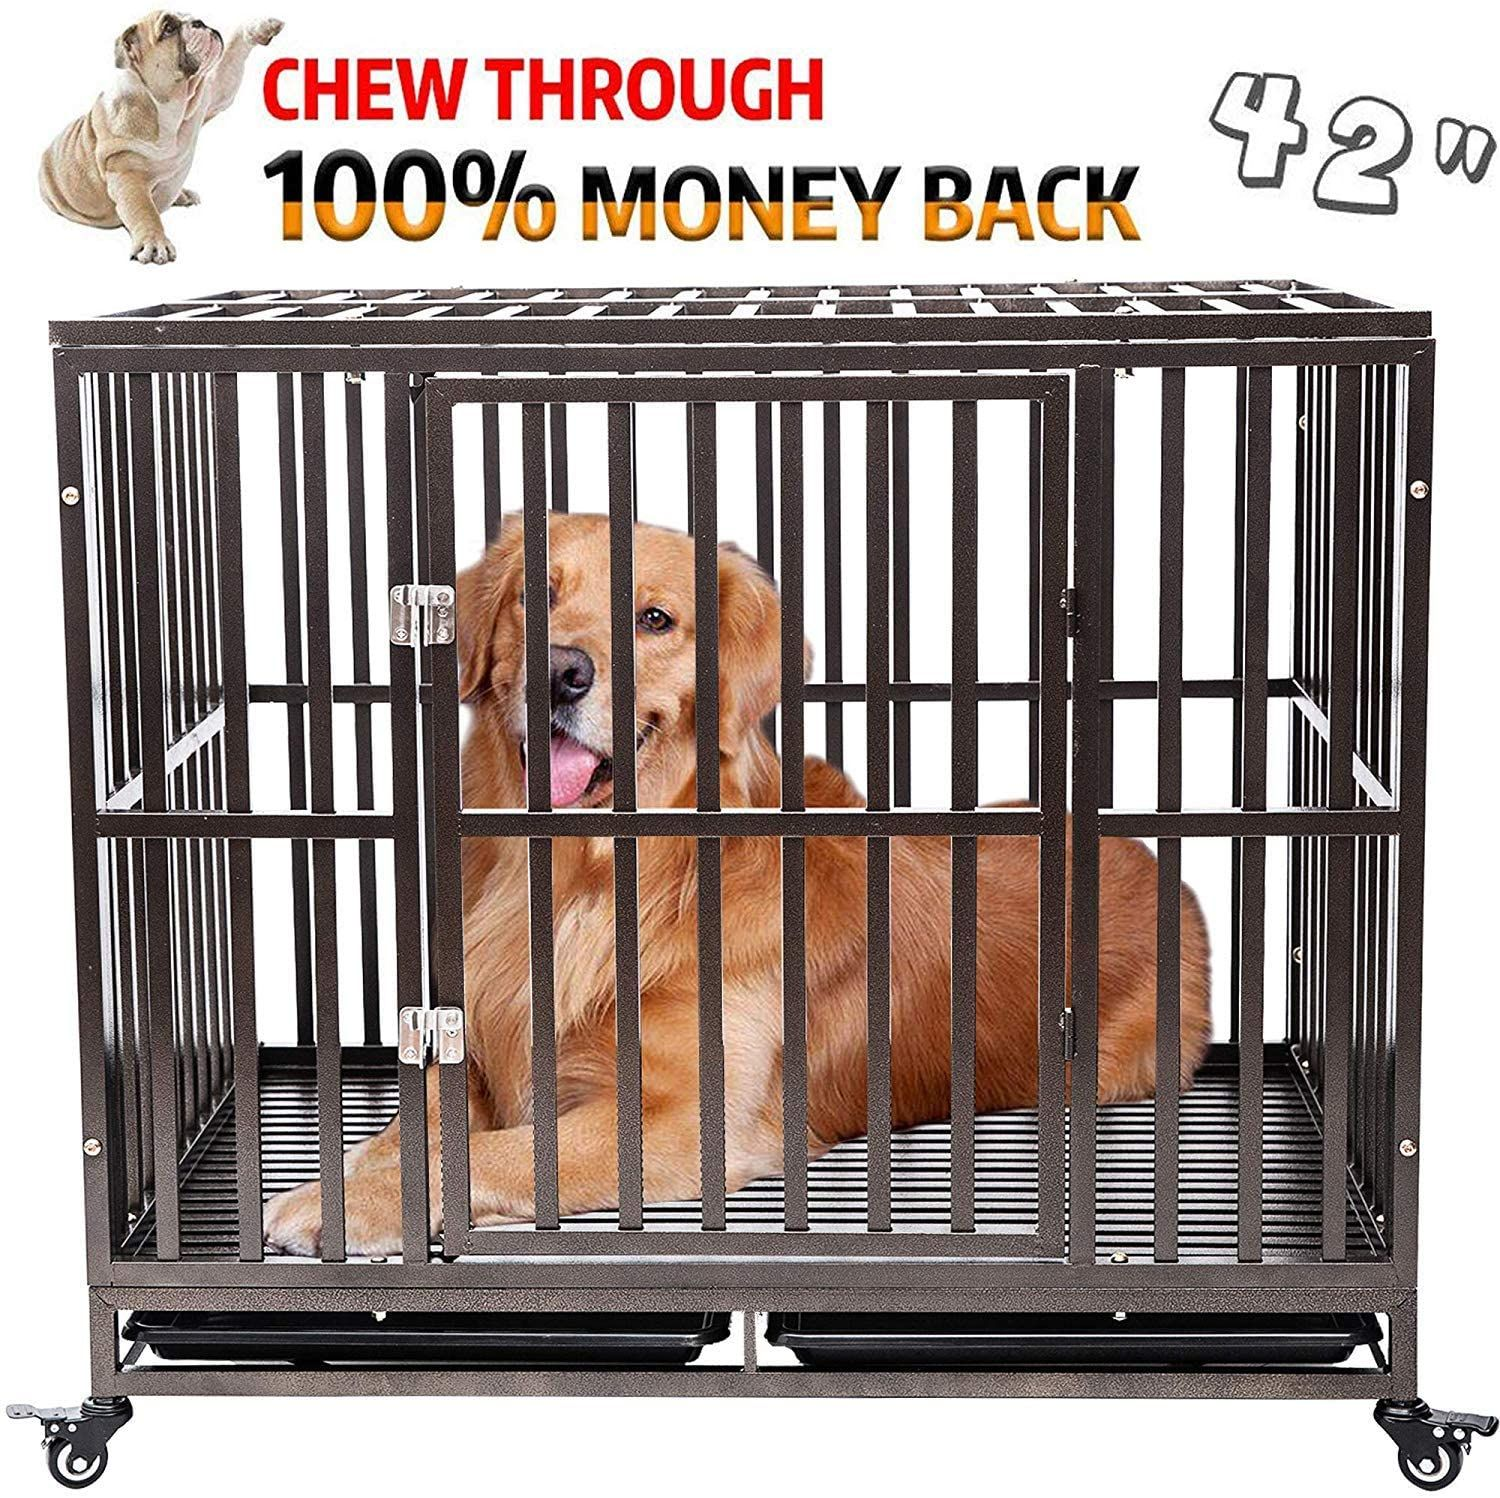 Gelinzon Heavy Duty Dog Cage Crate Kennel Roof Strong Metal For Large Dogs Easy To Assemble Pet In 2020 Dog Cages Pet Playpens Large Dogs